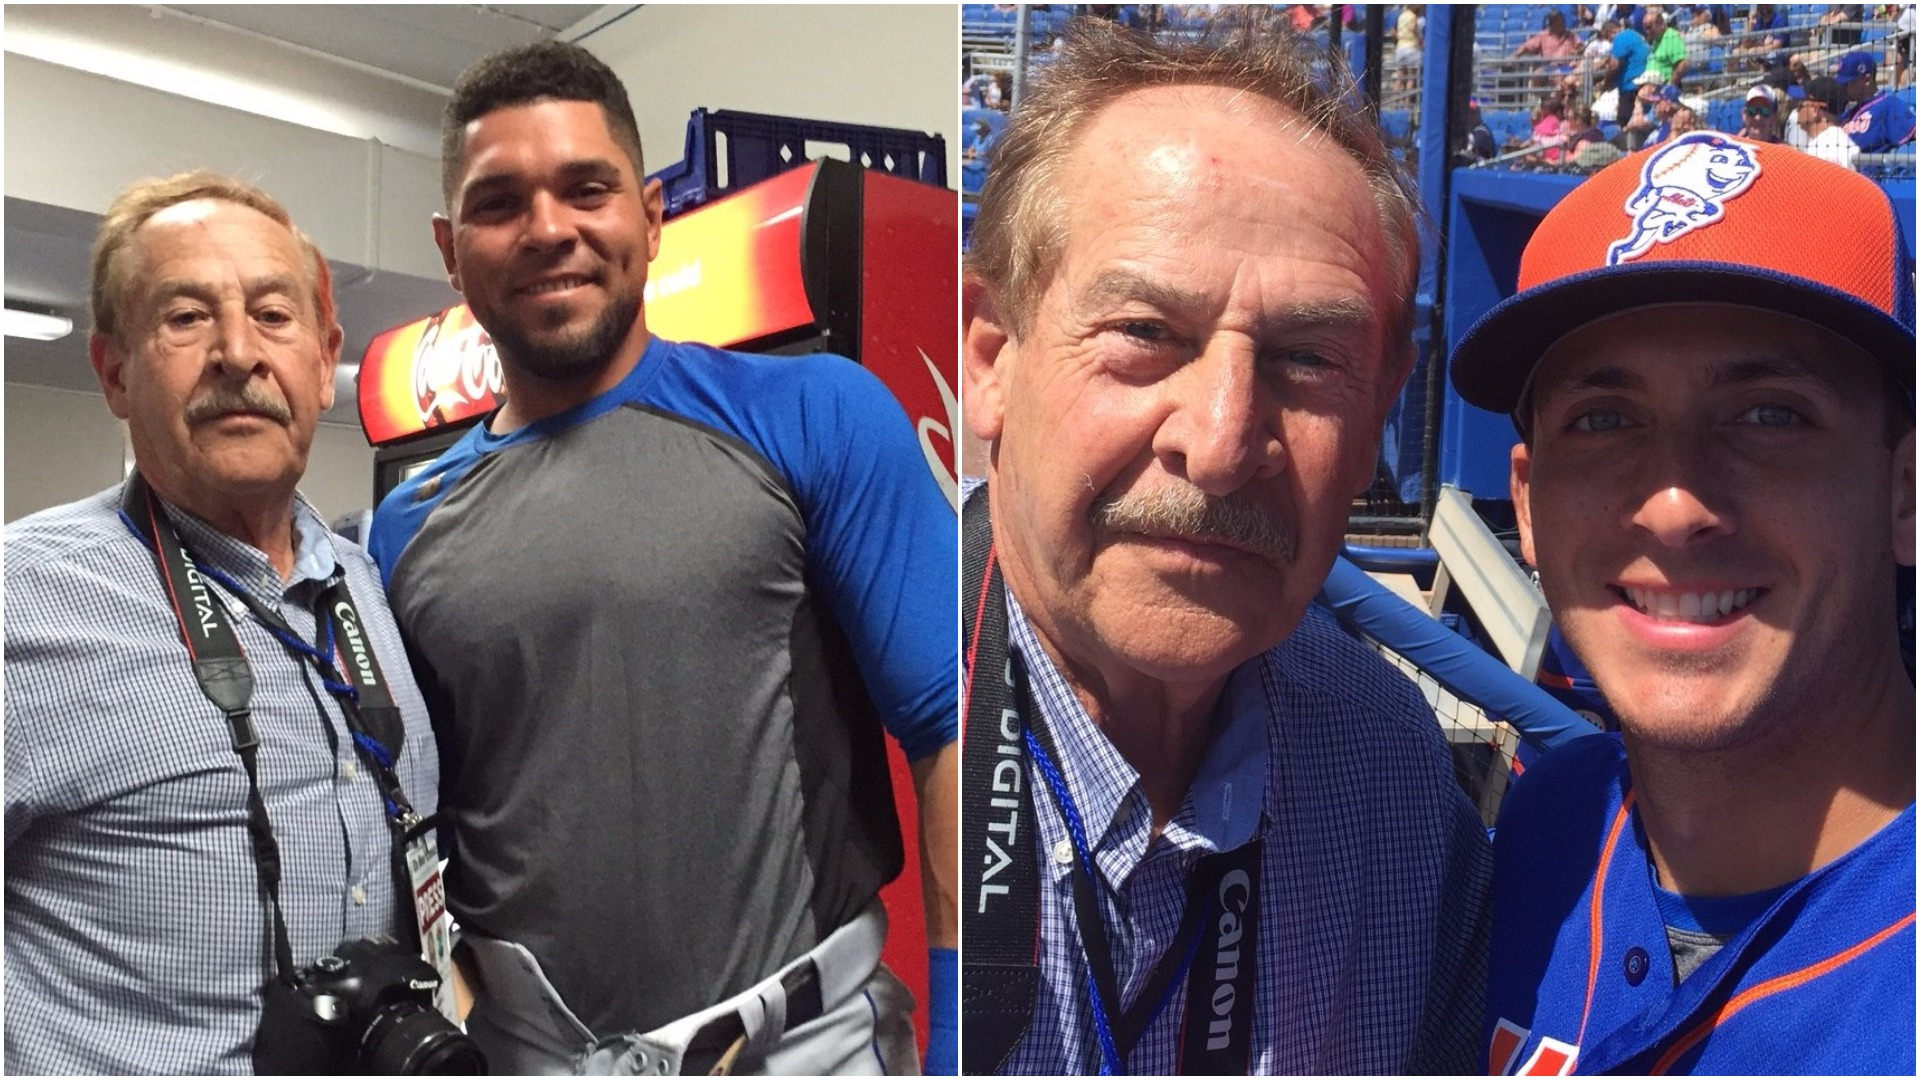 (Left) Sal Conforto (Publisher, Bronx Chronicle) and Johnny Monell. (Right) Conforto and TJ Rivera.